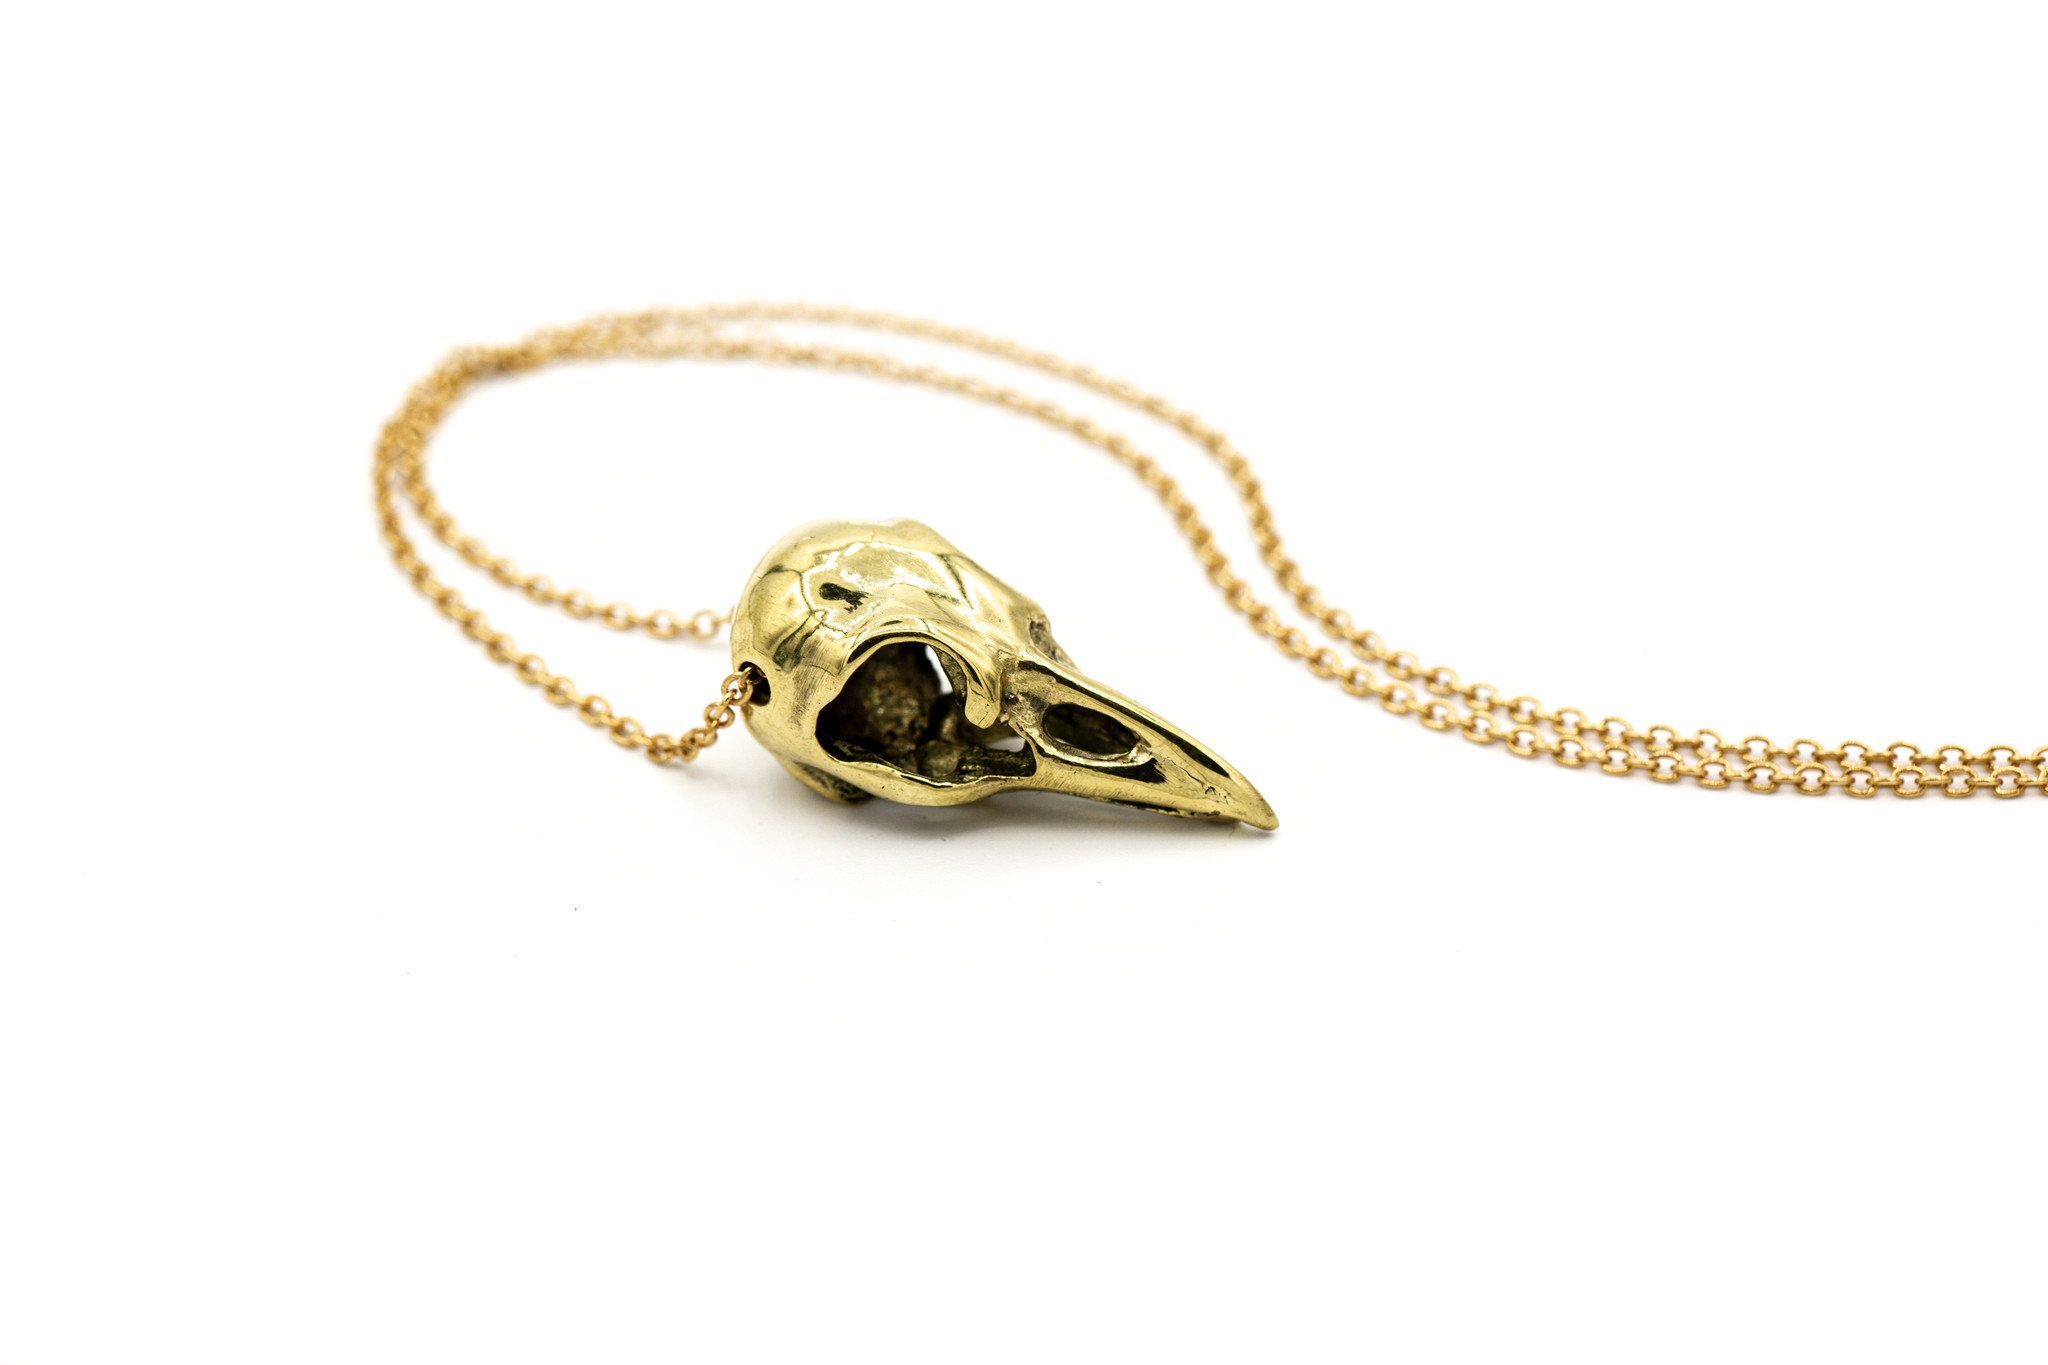 Brass Raven Skull Necklace